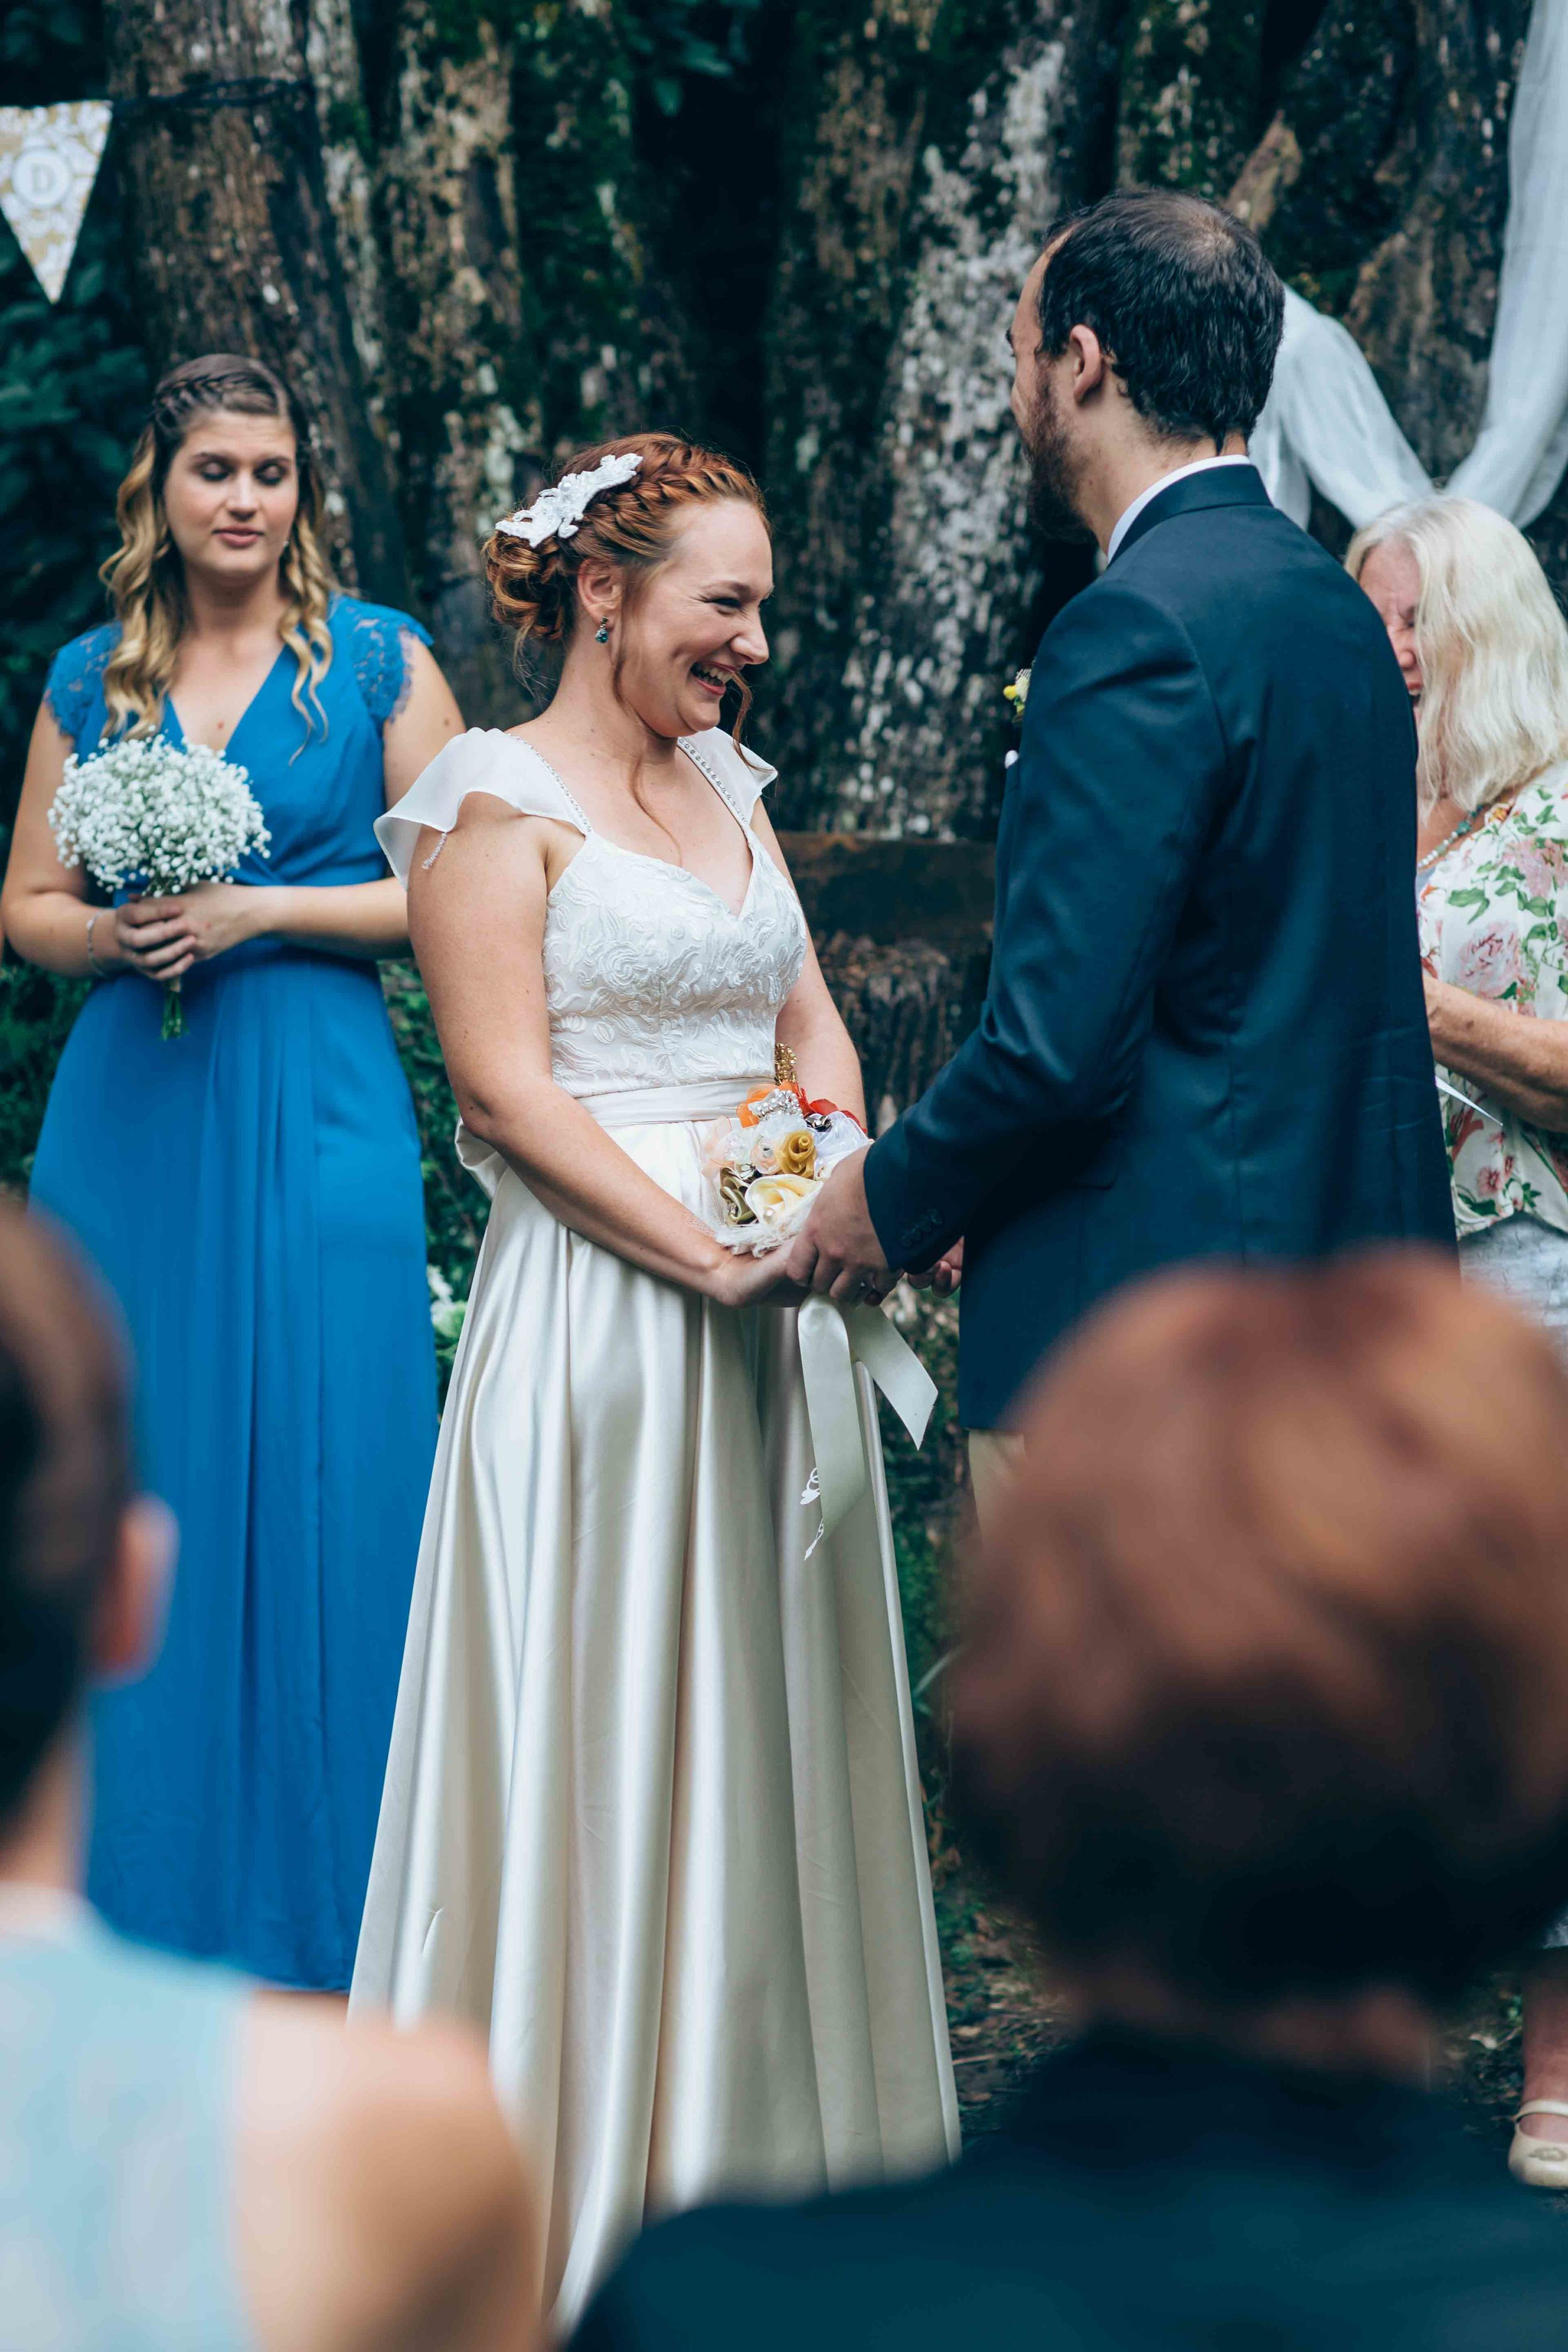 tweedcoastweddingphotographer-57.jpg